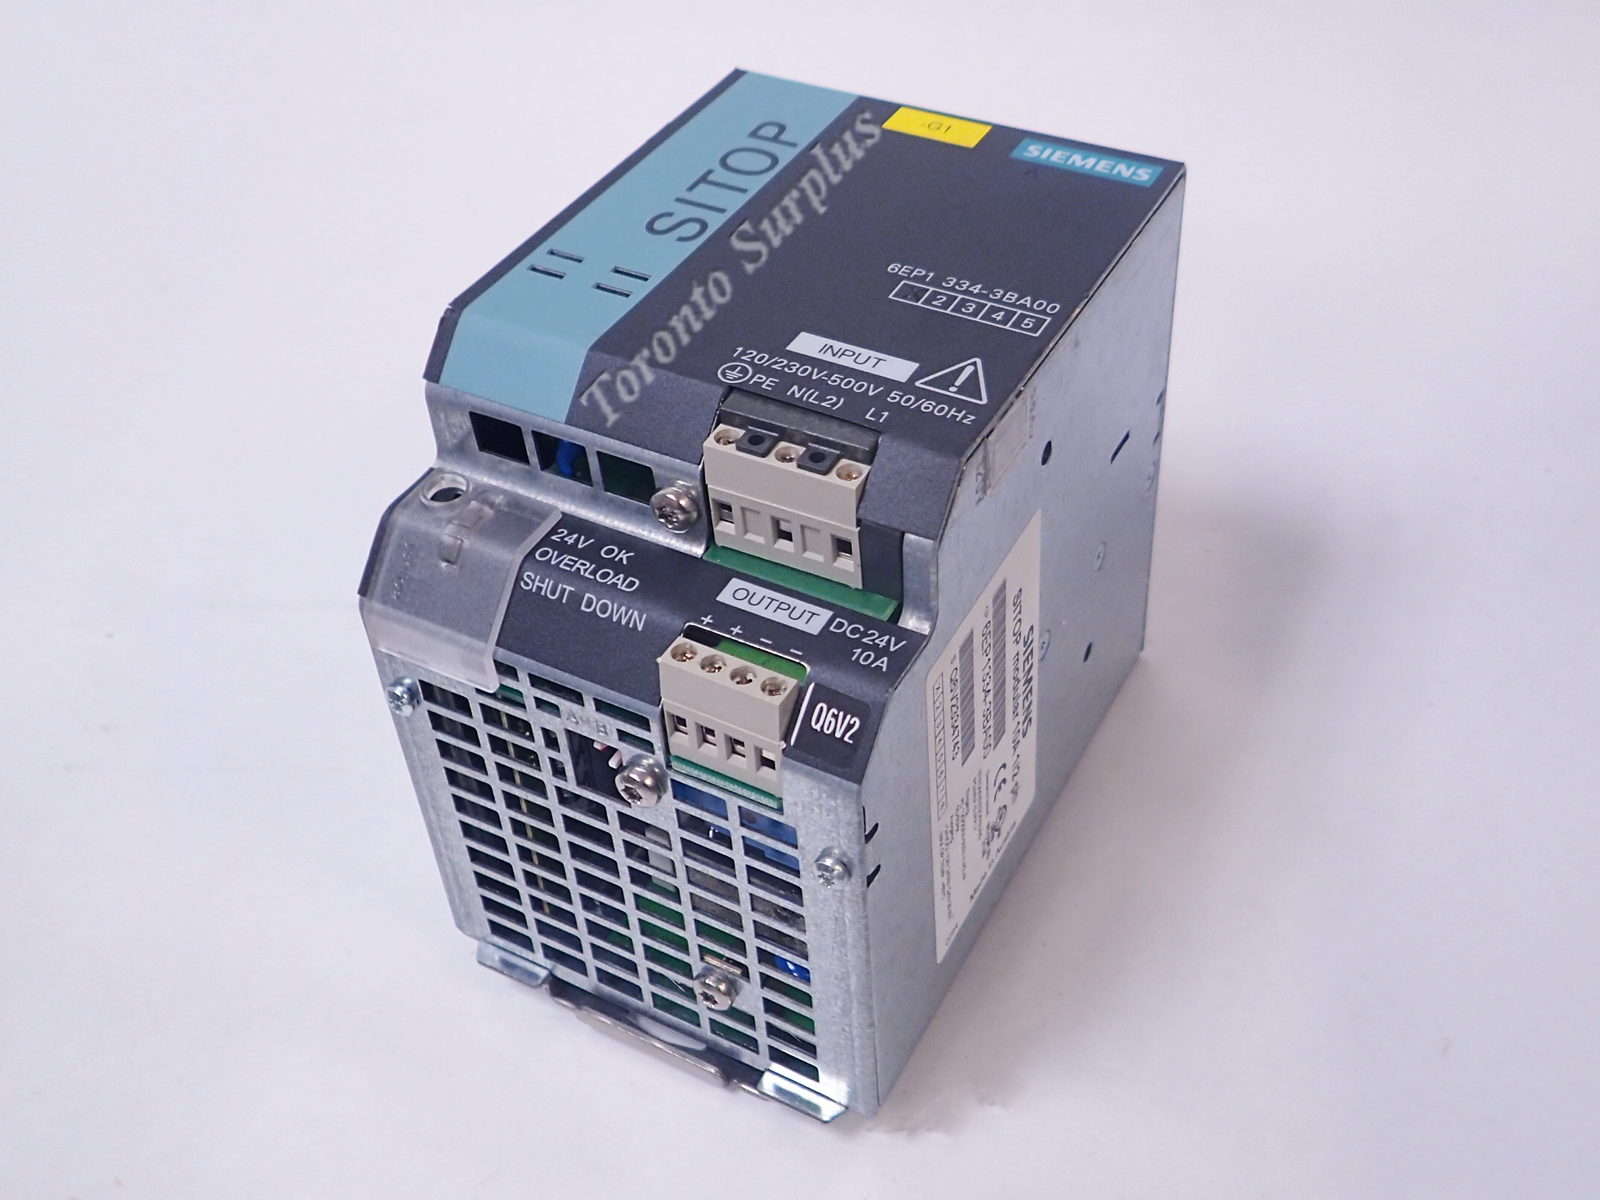 Af 24v 10a Siemens Sitop 6ep1334 3ba00 Power Supply 1 2 Ph 240w 24 Volts Ac To Dc Modular Plus 10 Stabilized Input 120 230 500